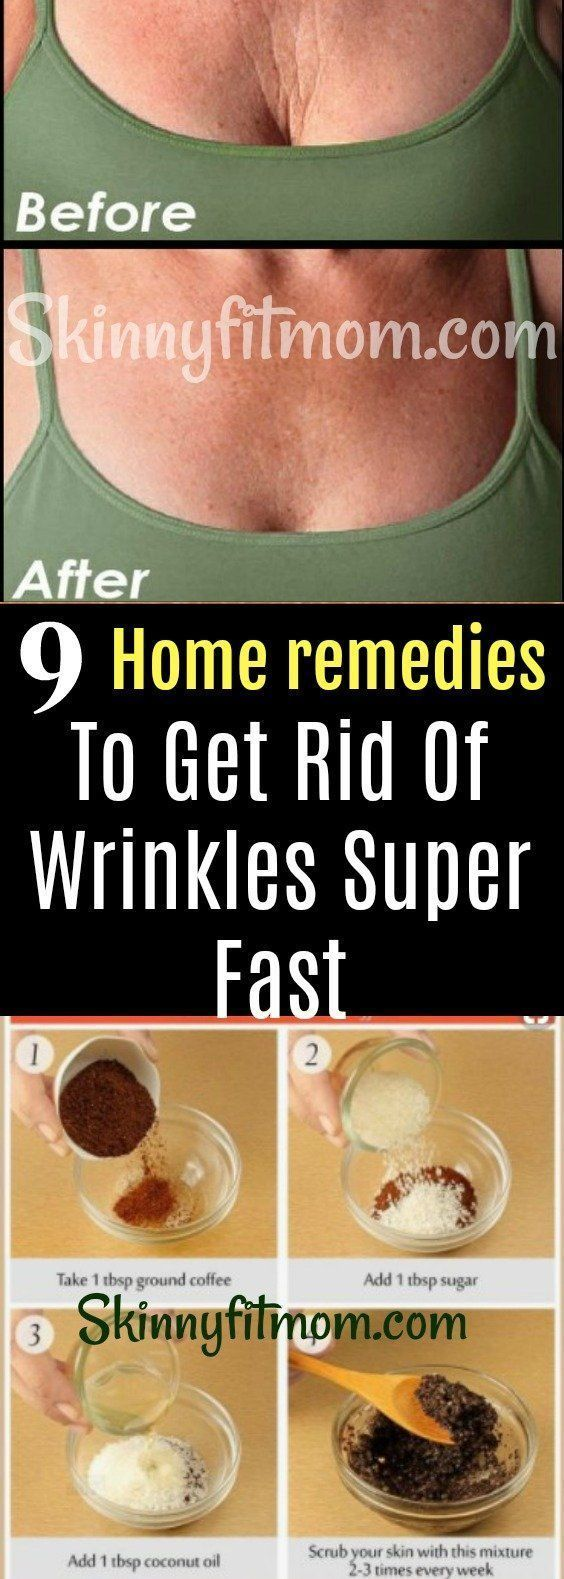 9 Home Remedies For Anti-Aging and To Help Make Wrinkles Around Your Face, Mouth And Eyes Disappear Super Fast! Tutorials And Step By Step Skin Care Routines. #AntiAgingTreatmentsSkinCare